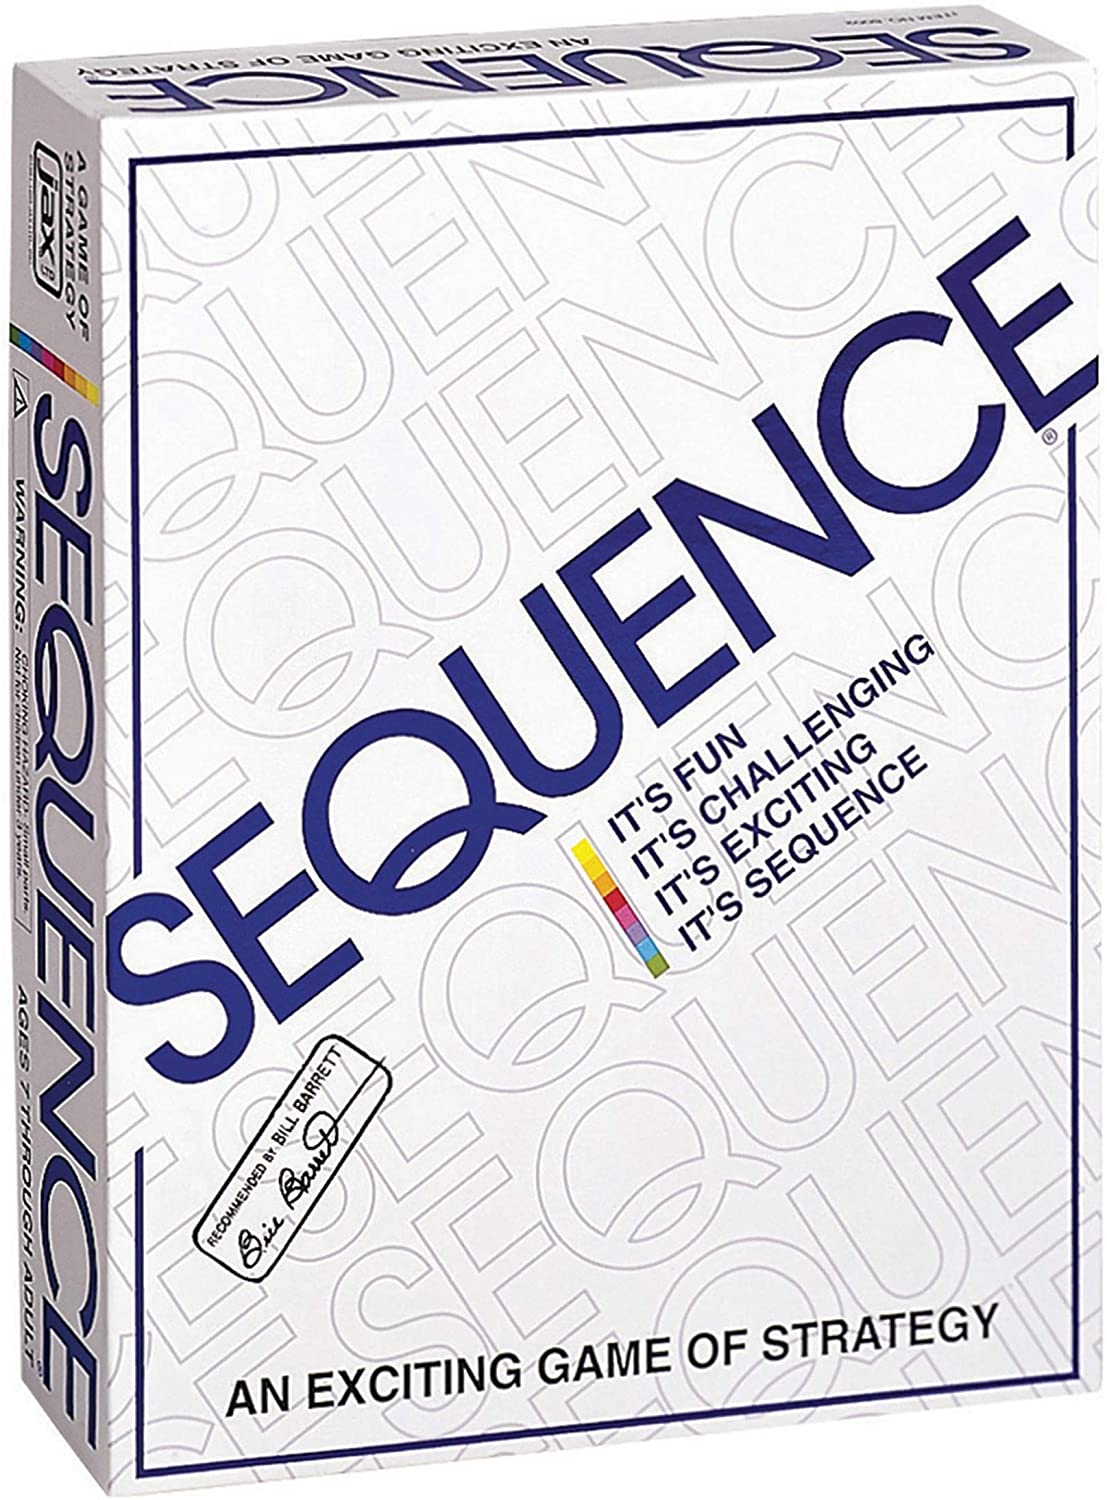 Jax Sequence Original Sequence Adult Game